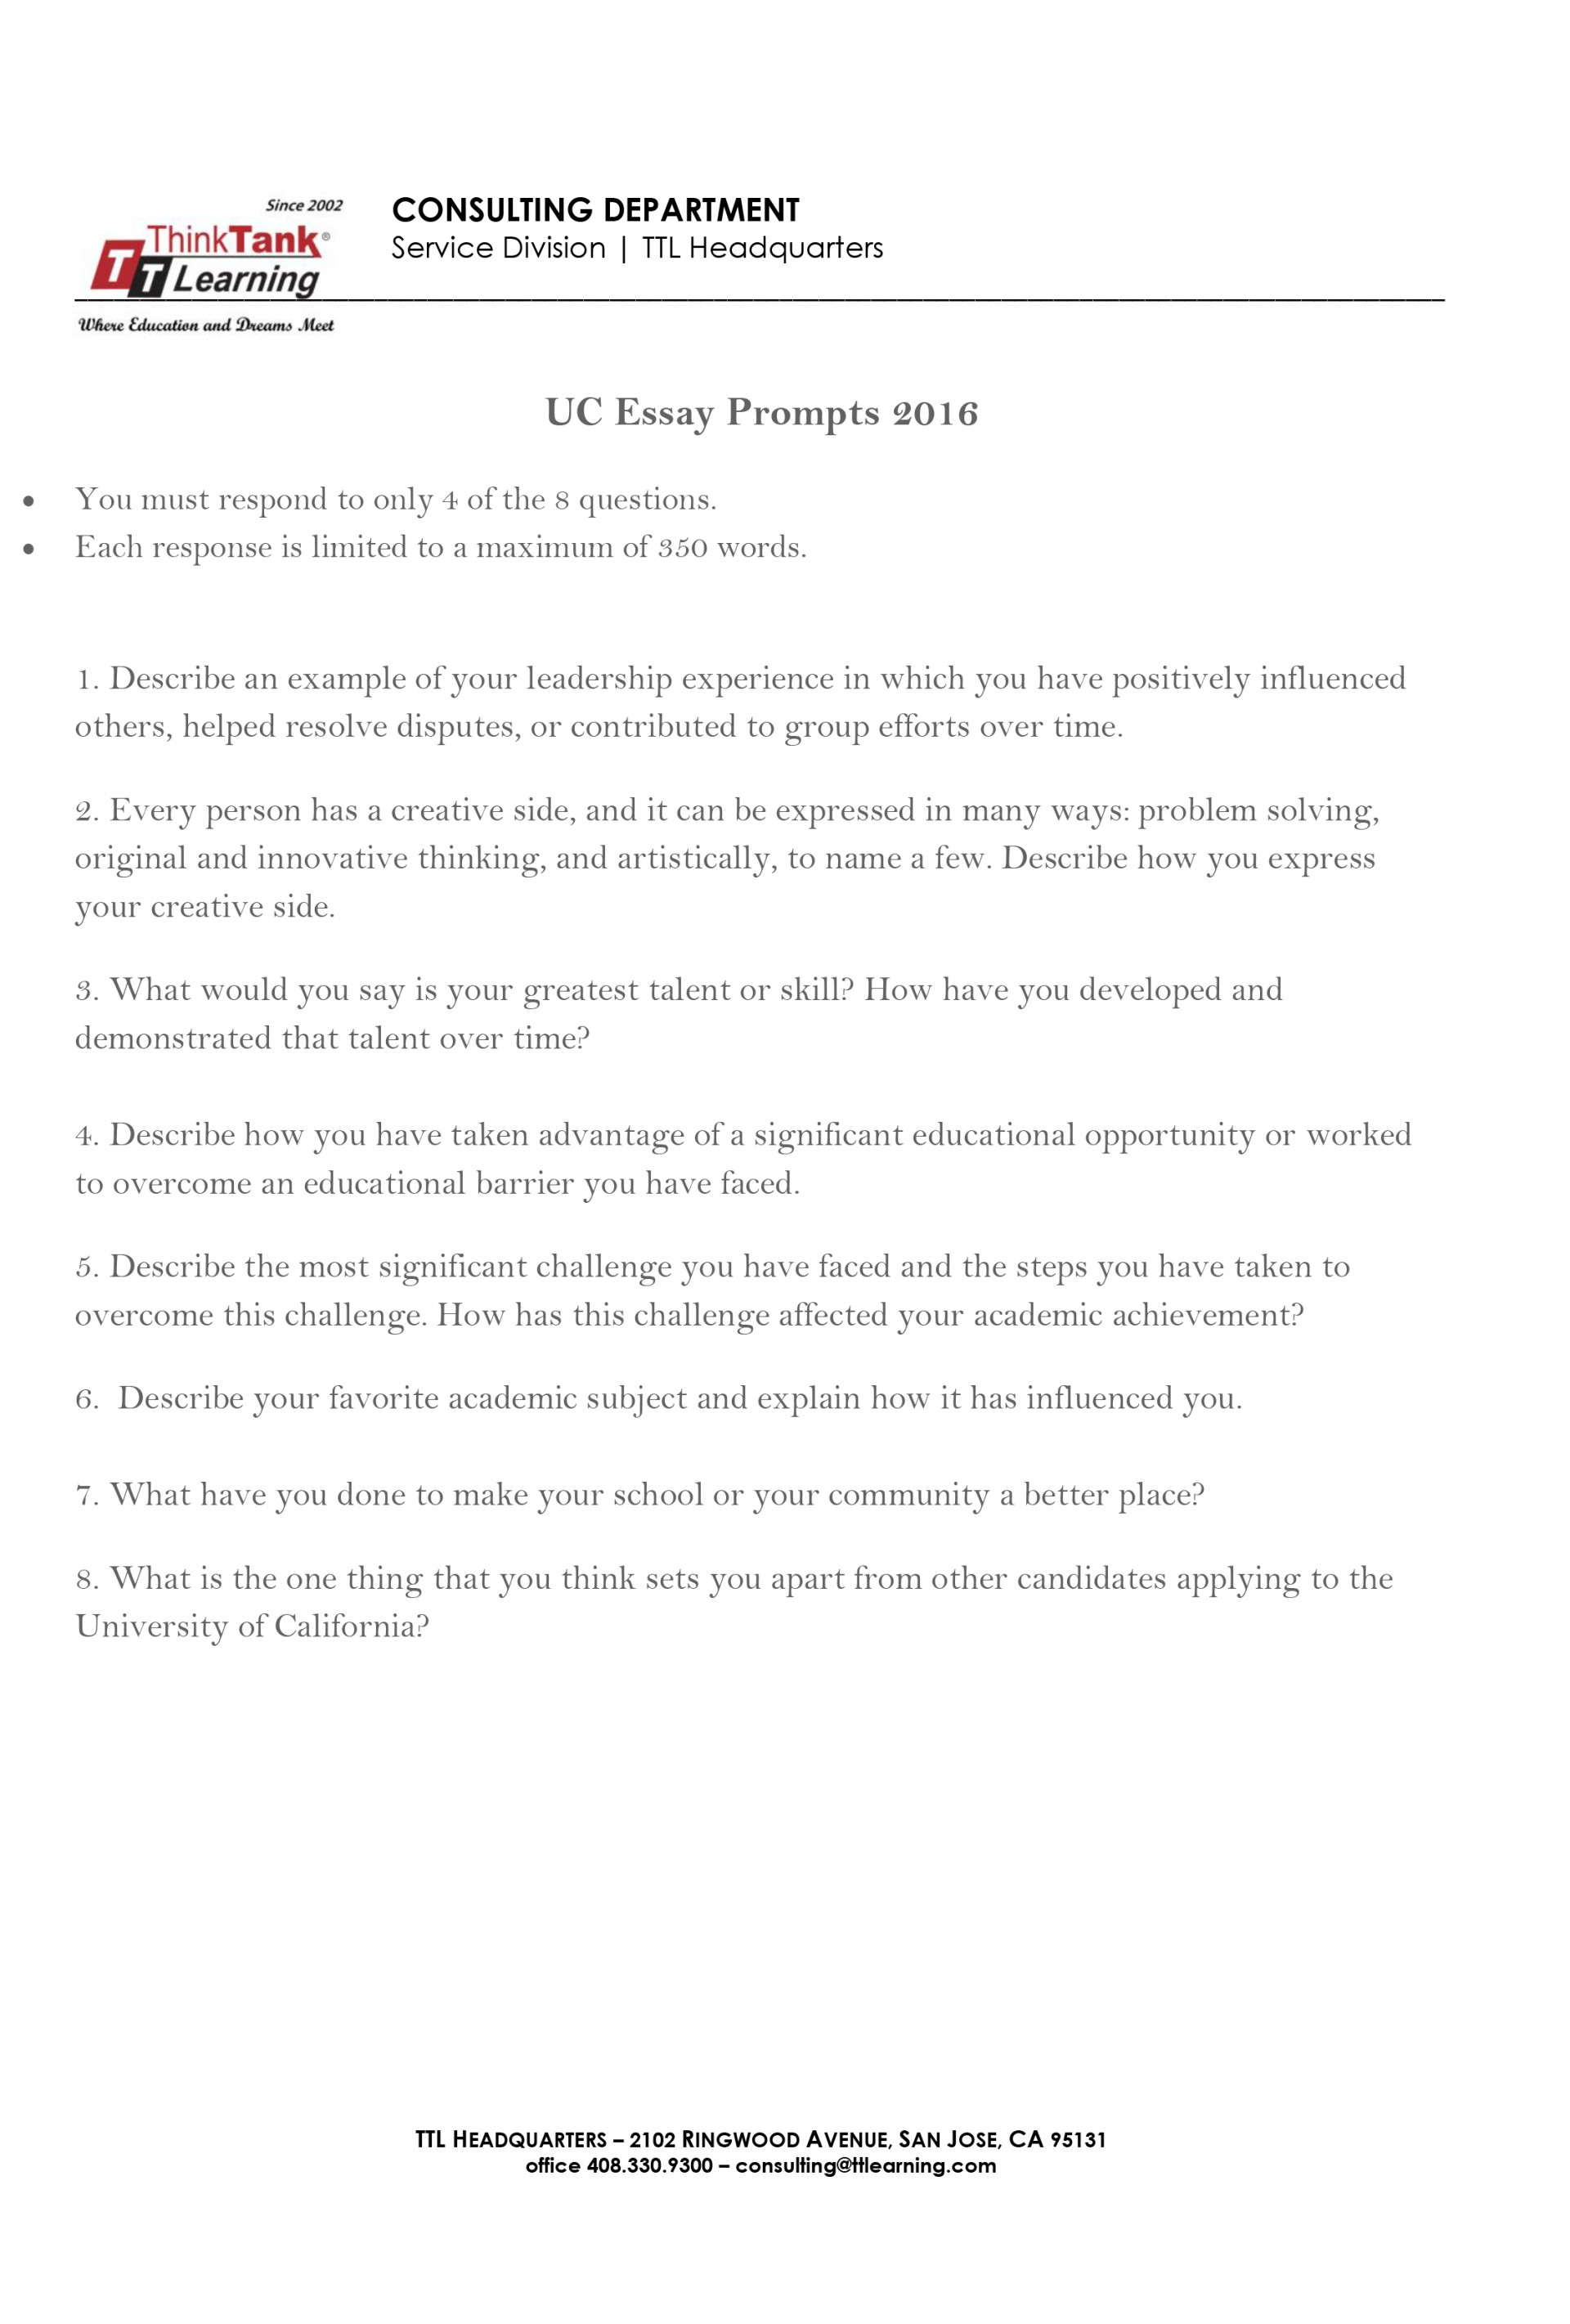 001 Think Tank Essay Uc Prompts 2016 2 Top 1920